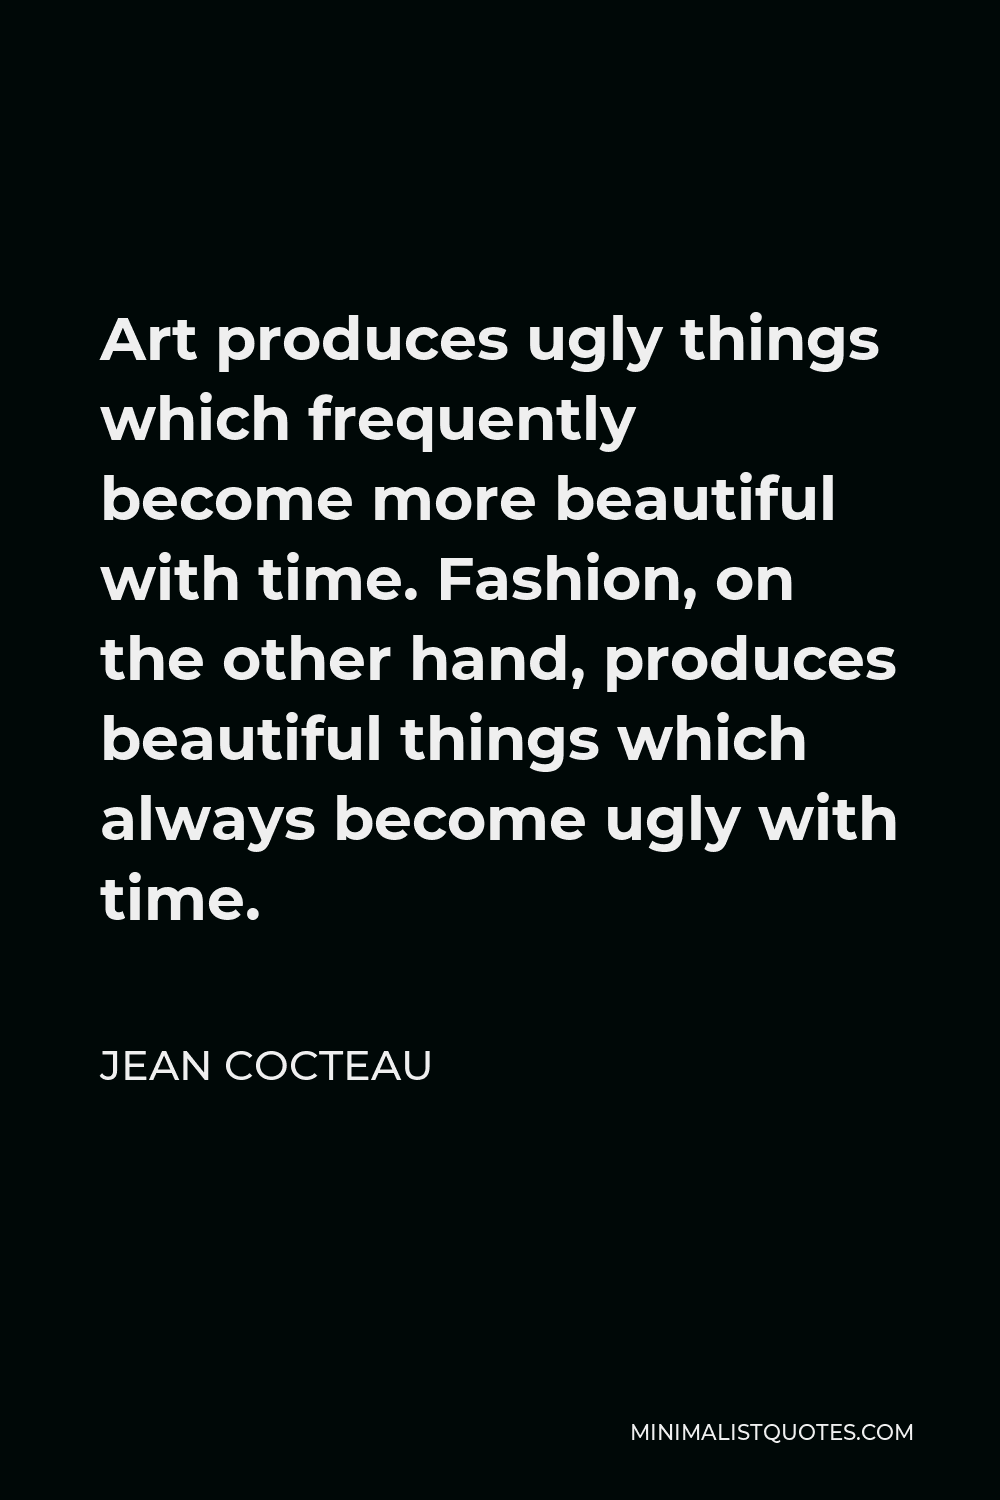 Jean Cocteau Quote - Art produces ugly things which frequently become more beautiful with time. Fashion, on the other hand, produces beautiful things which always become ugly with time.